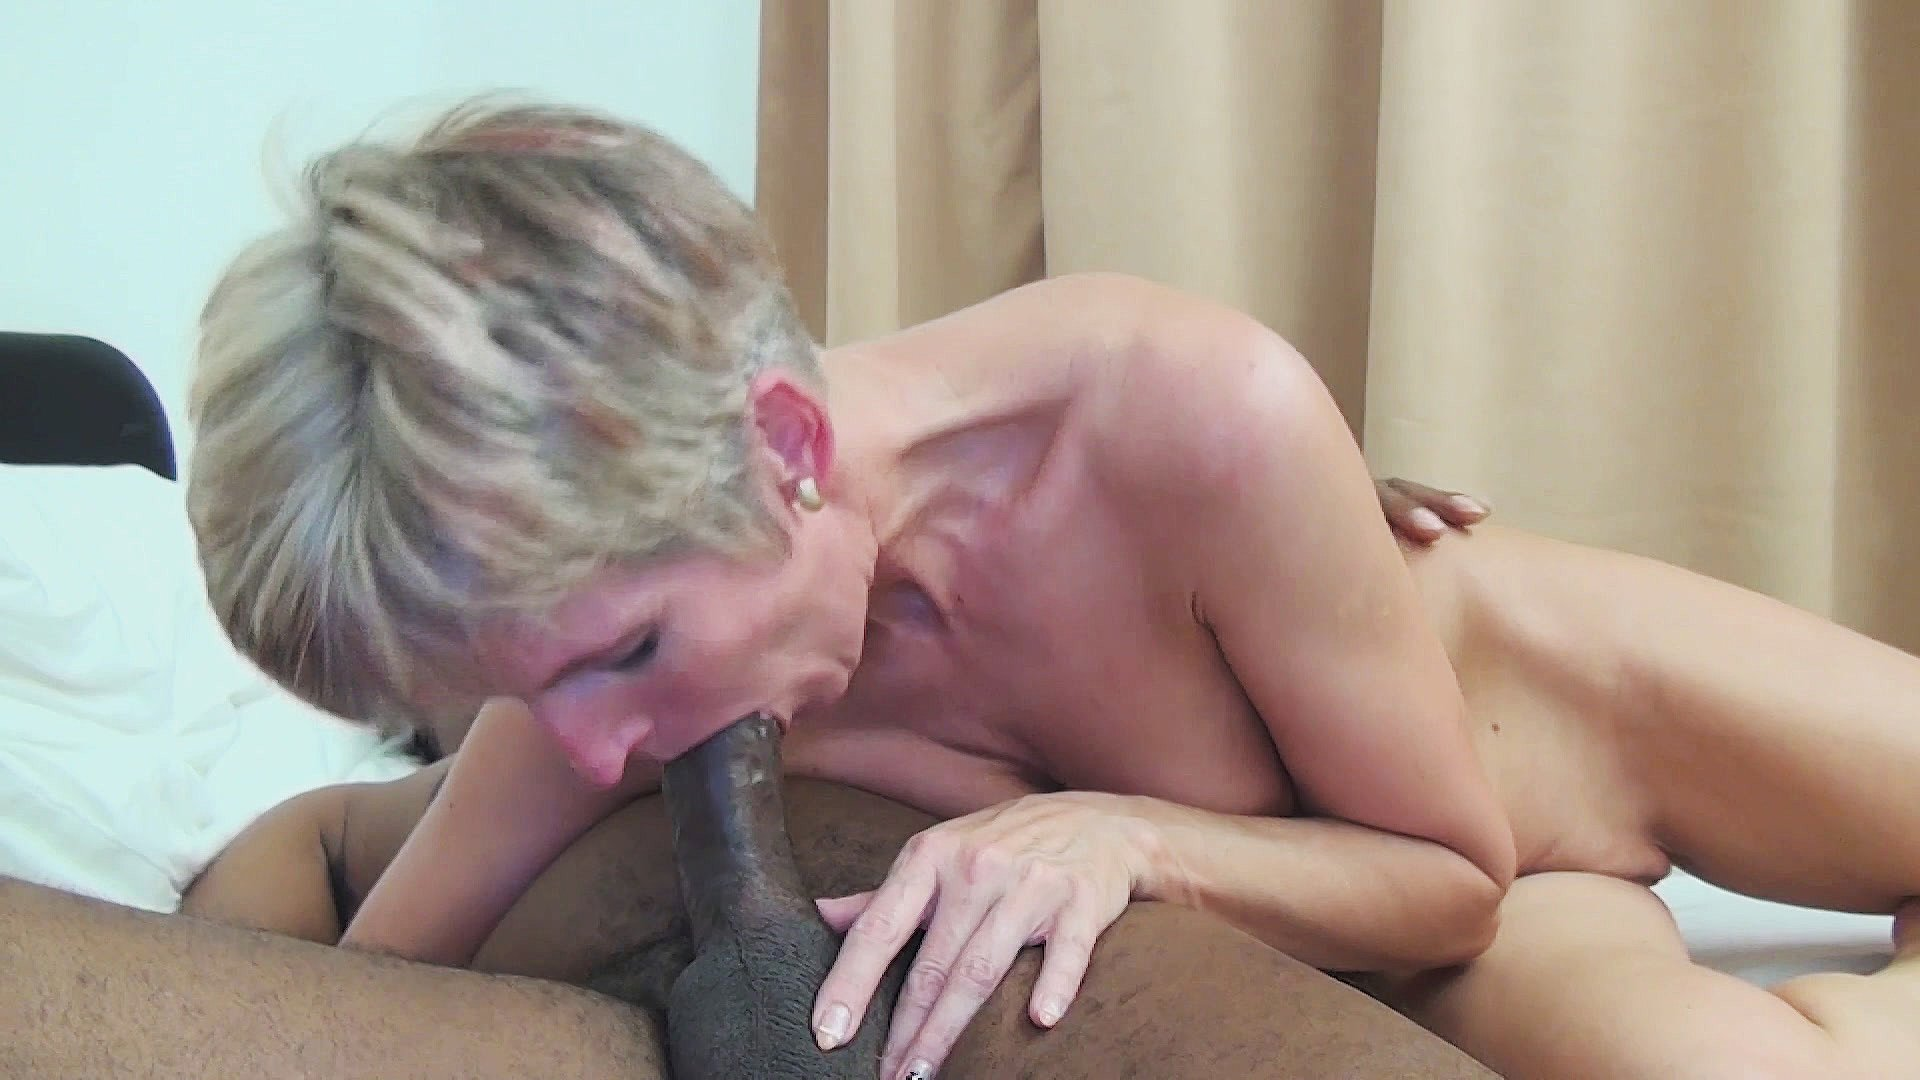 Straight Guys First Time Anal